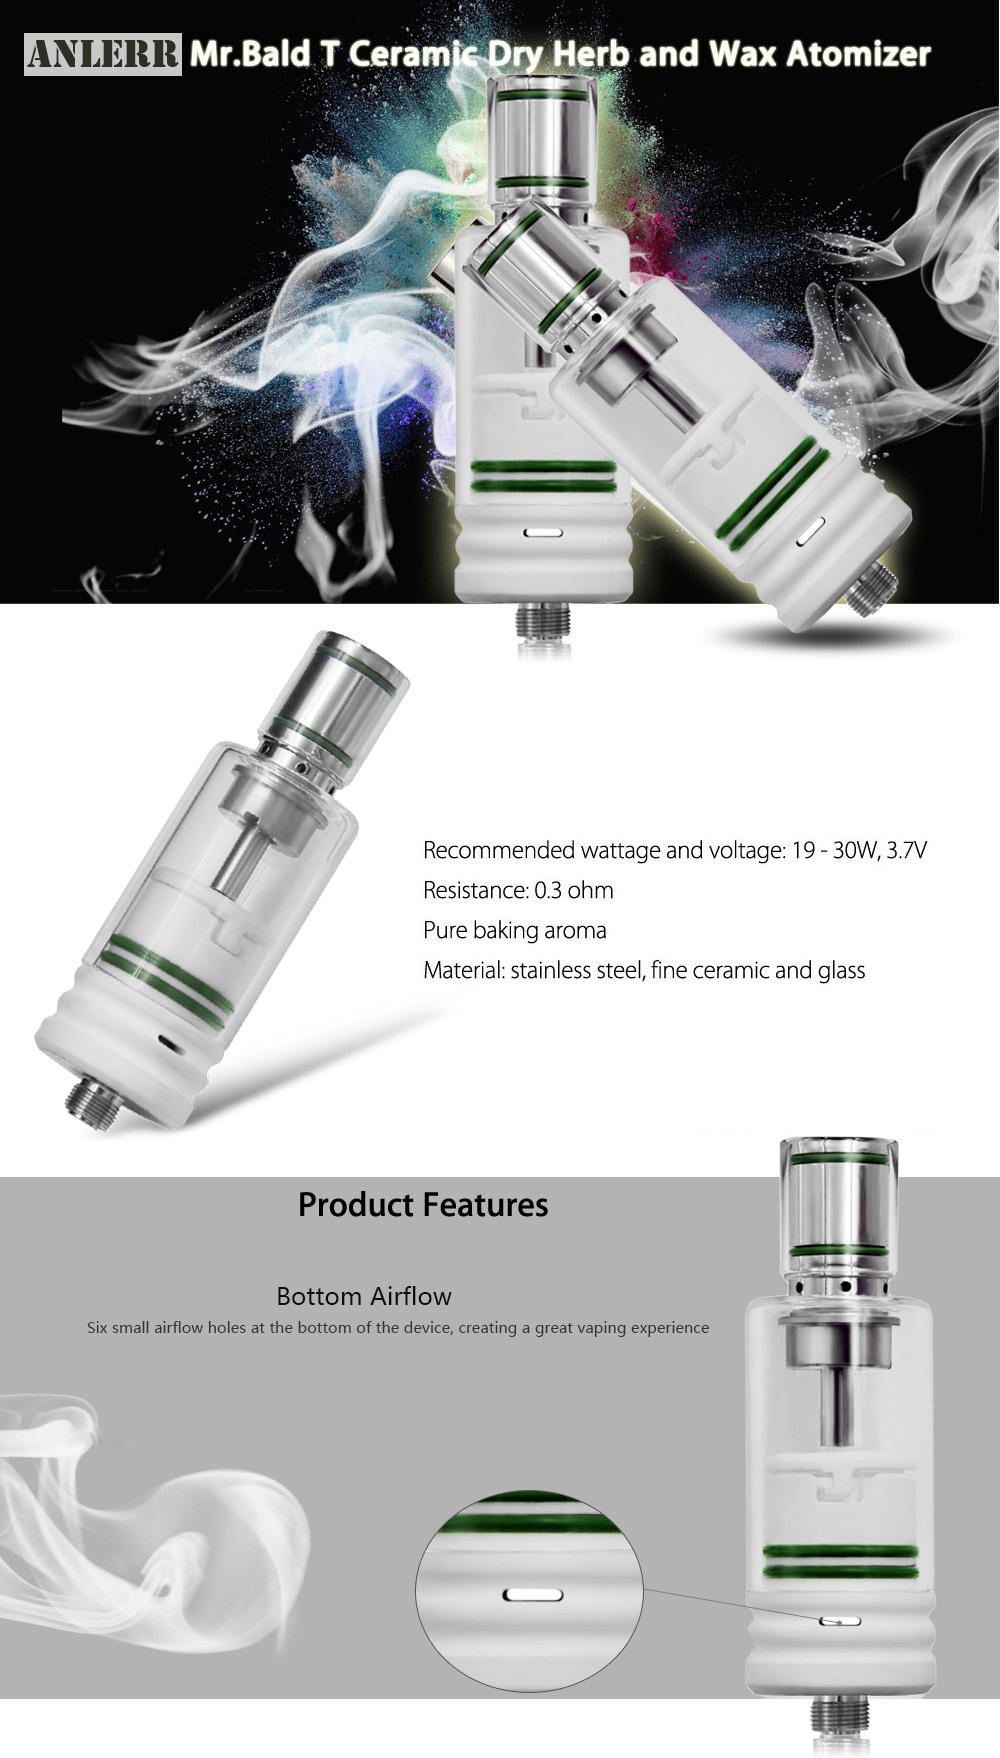 Original ANLERR MrBald T Ceramic Dry Herb and Wax Atomizer with 0.3 ohm / 19 - 30W / 3.7V for E Cigarette